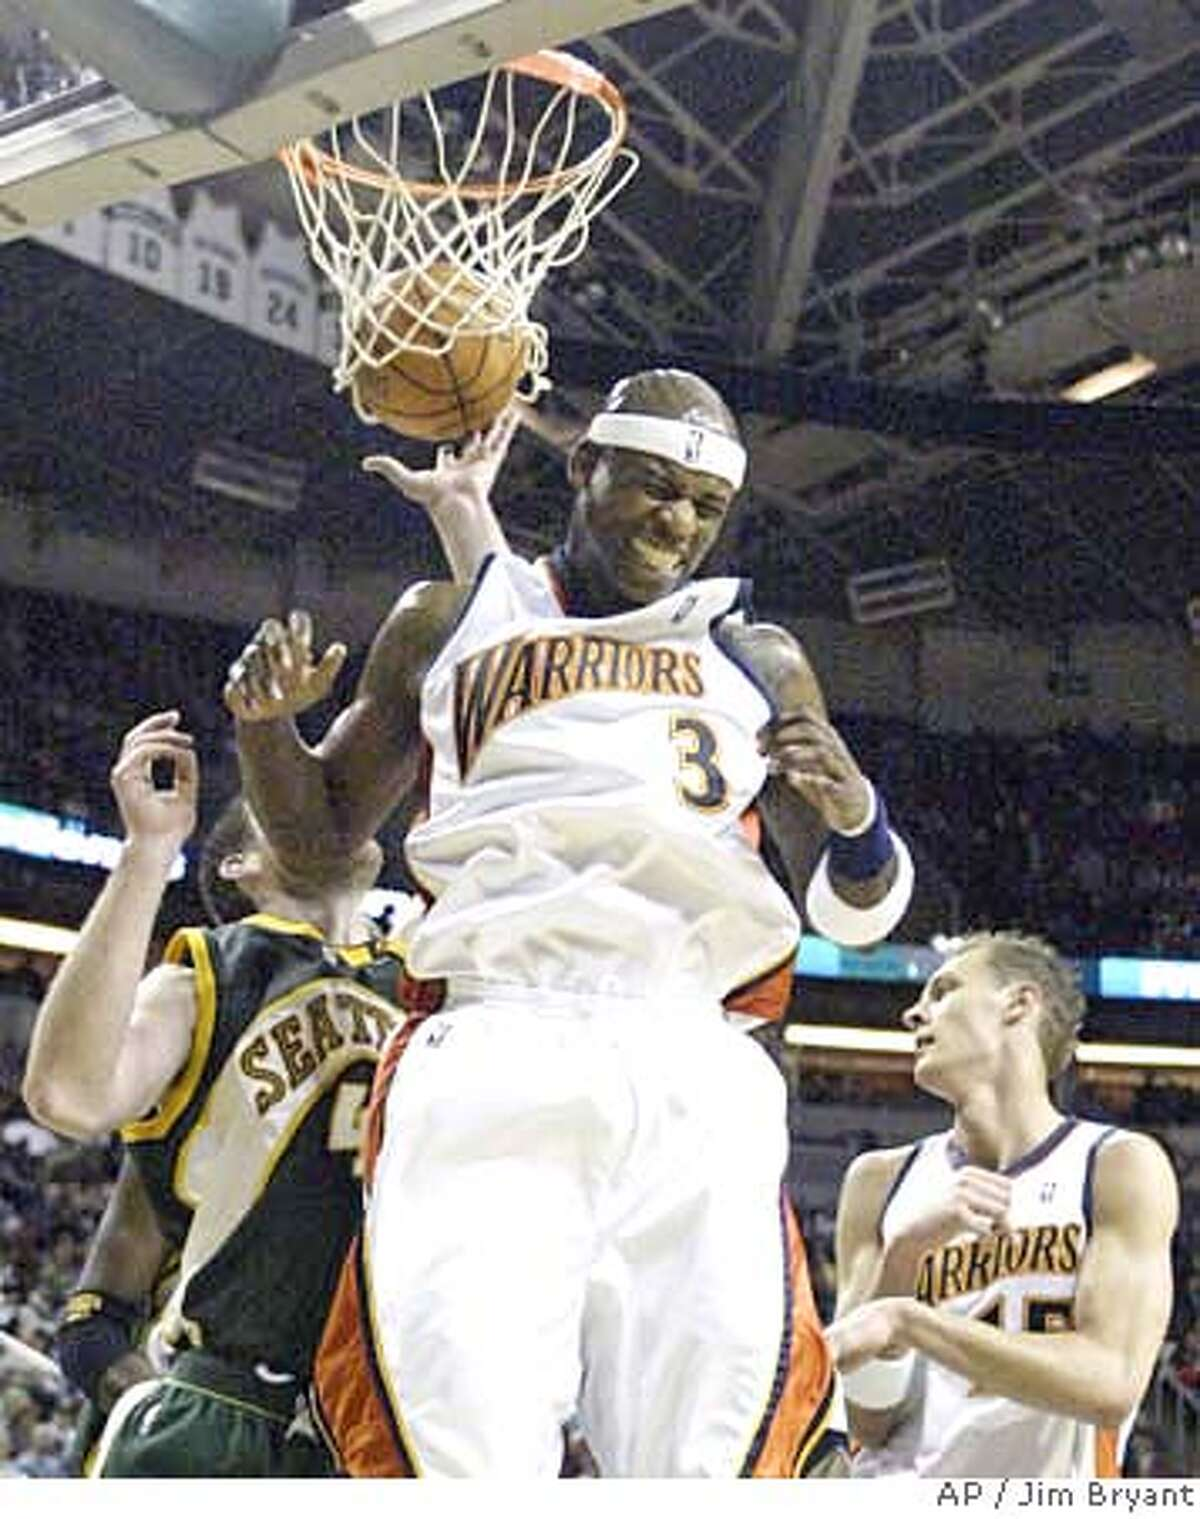 Golden State Warriors' Al Harrington (3) celebrates a basket against the Seattle SuperSonics during the first half of an NBA basketball game Saturday, March 17, 2007 in Seattle. Defending for the Sonics' is Nick Collison, left; Warriors' Andris Biedrins, right, of Latvia, is at right. (AP Photo/Jim Bryant)